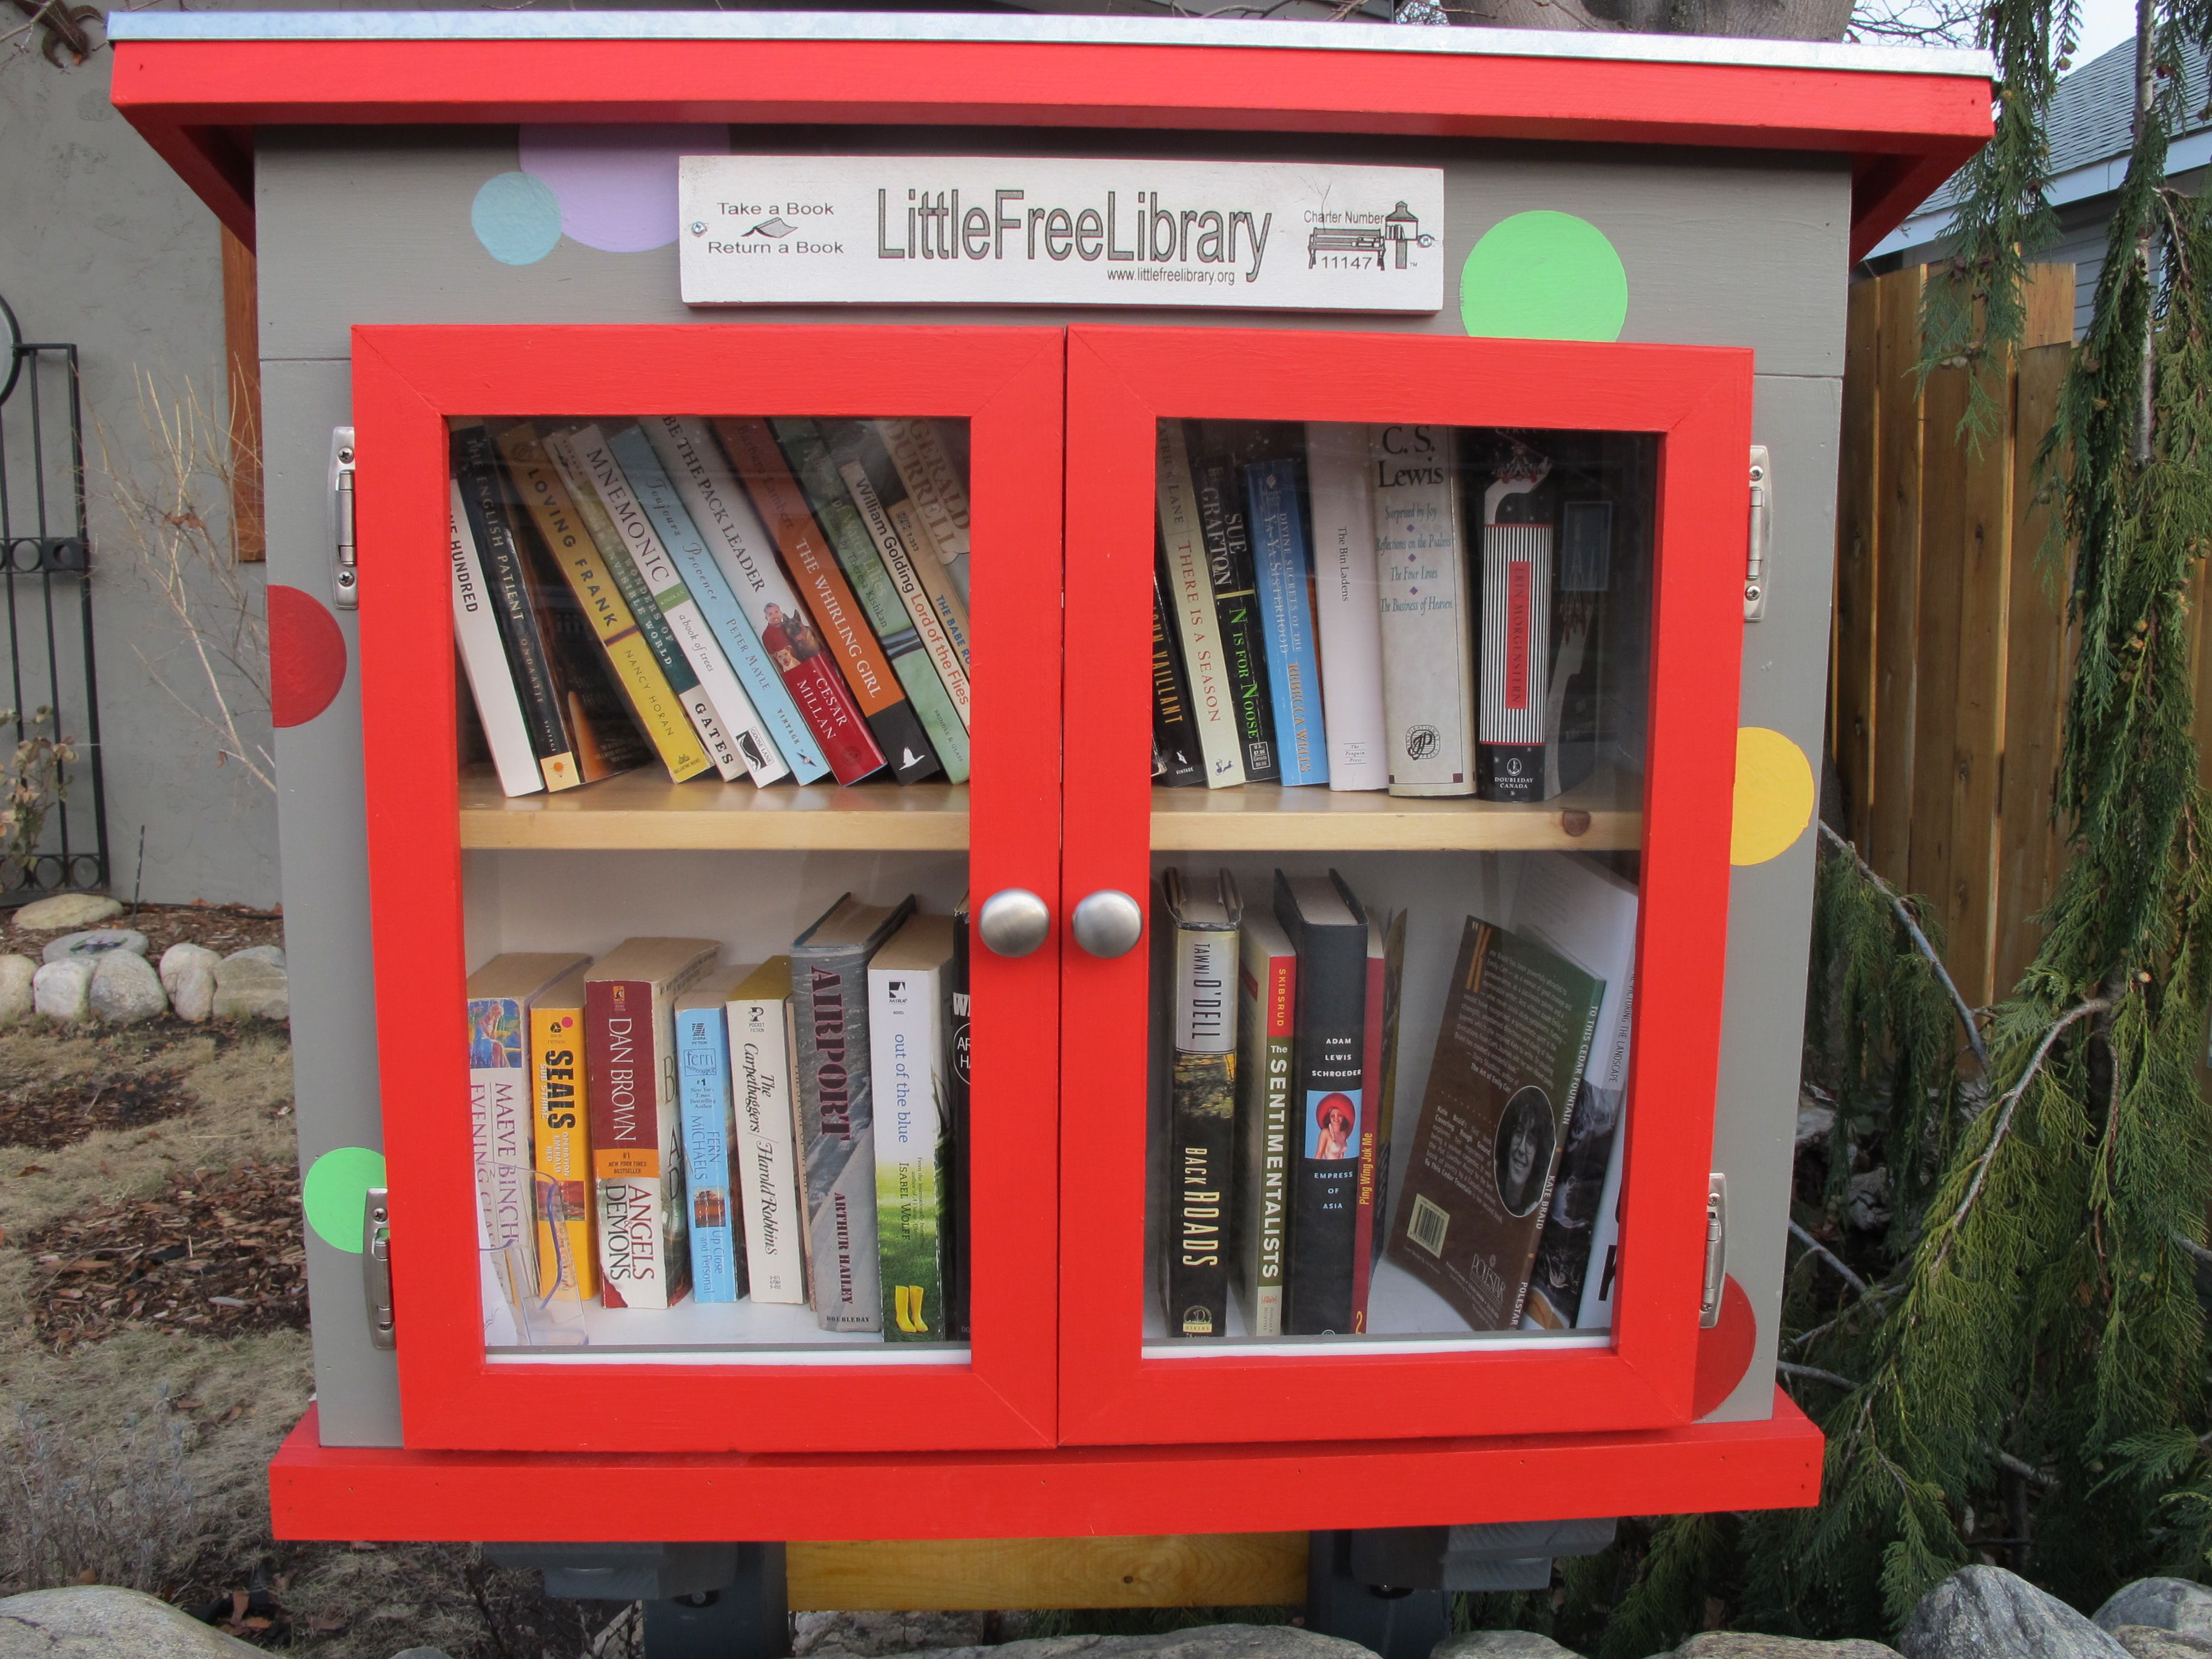 Dave And Allison Corbeil And Howard Penticton British Columbia Canada Allison Had Been Thinking About Little Free Libraries Little Library Free Library